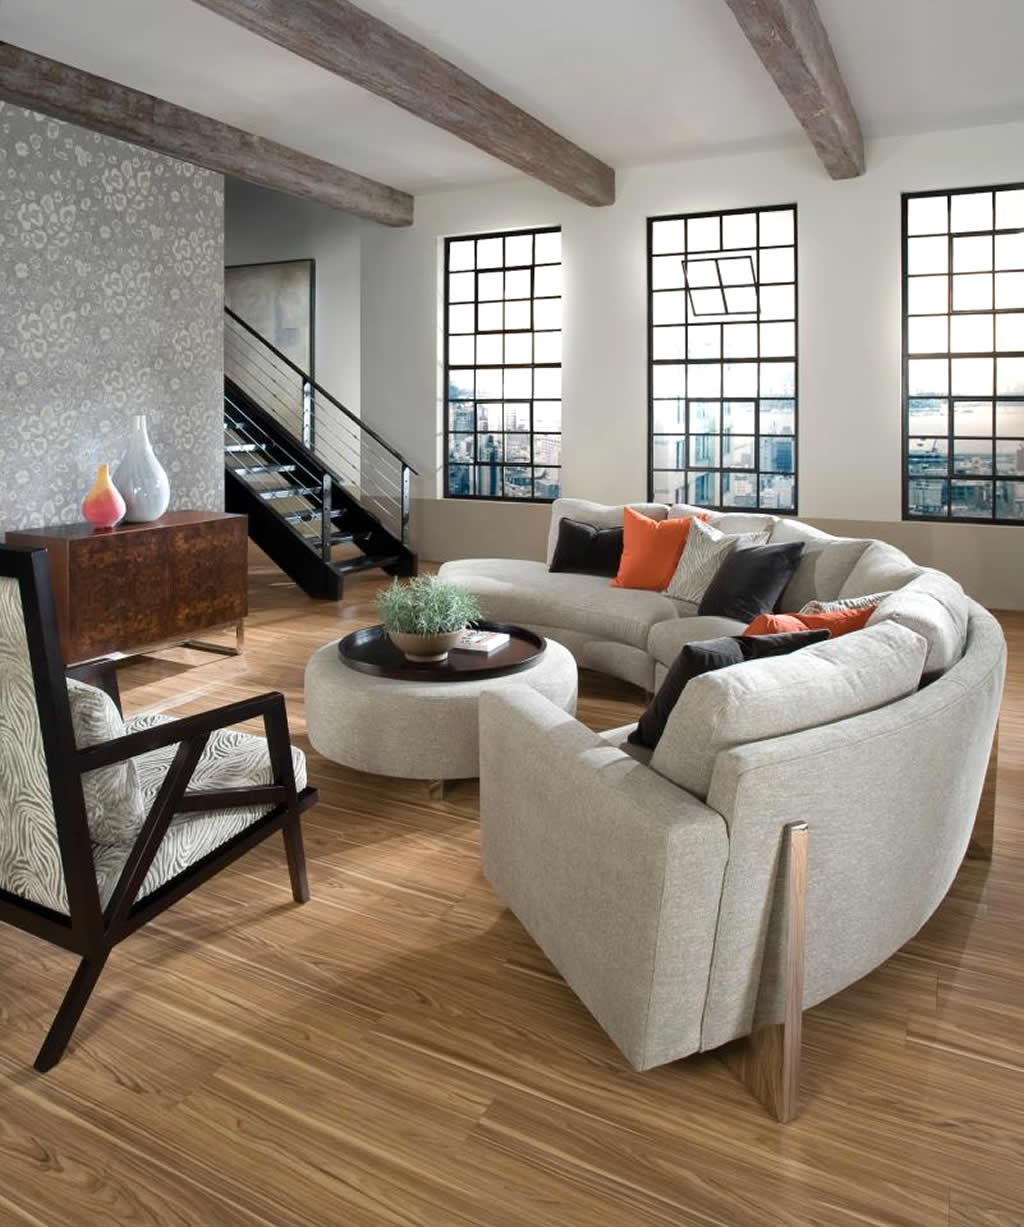 Living Room Interior Design with cool Clip Sectional Sofa